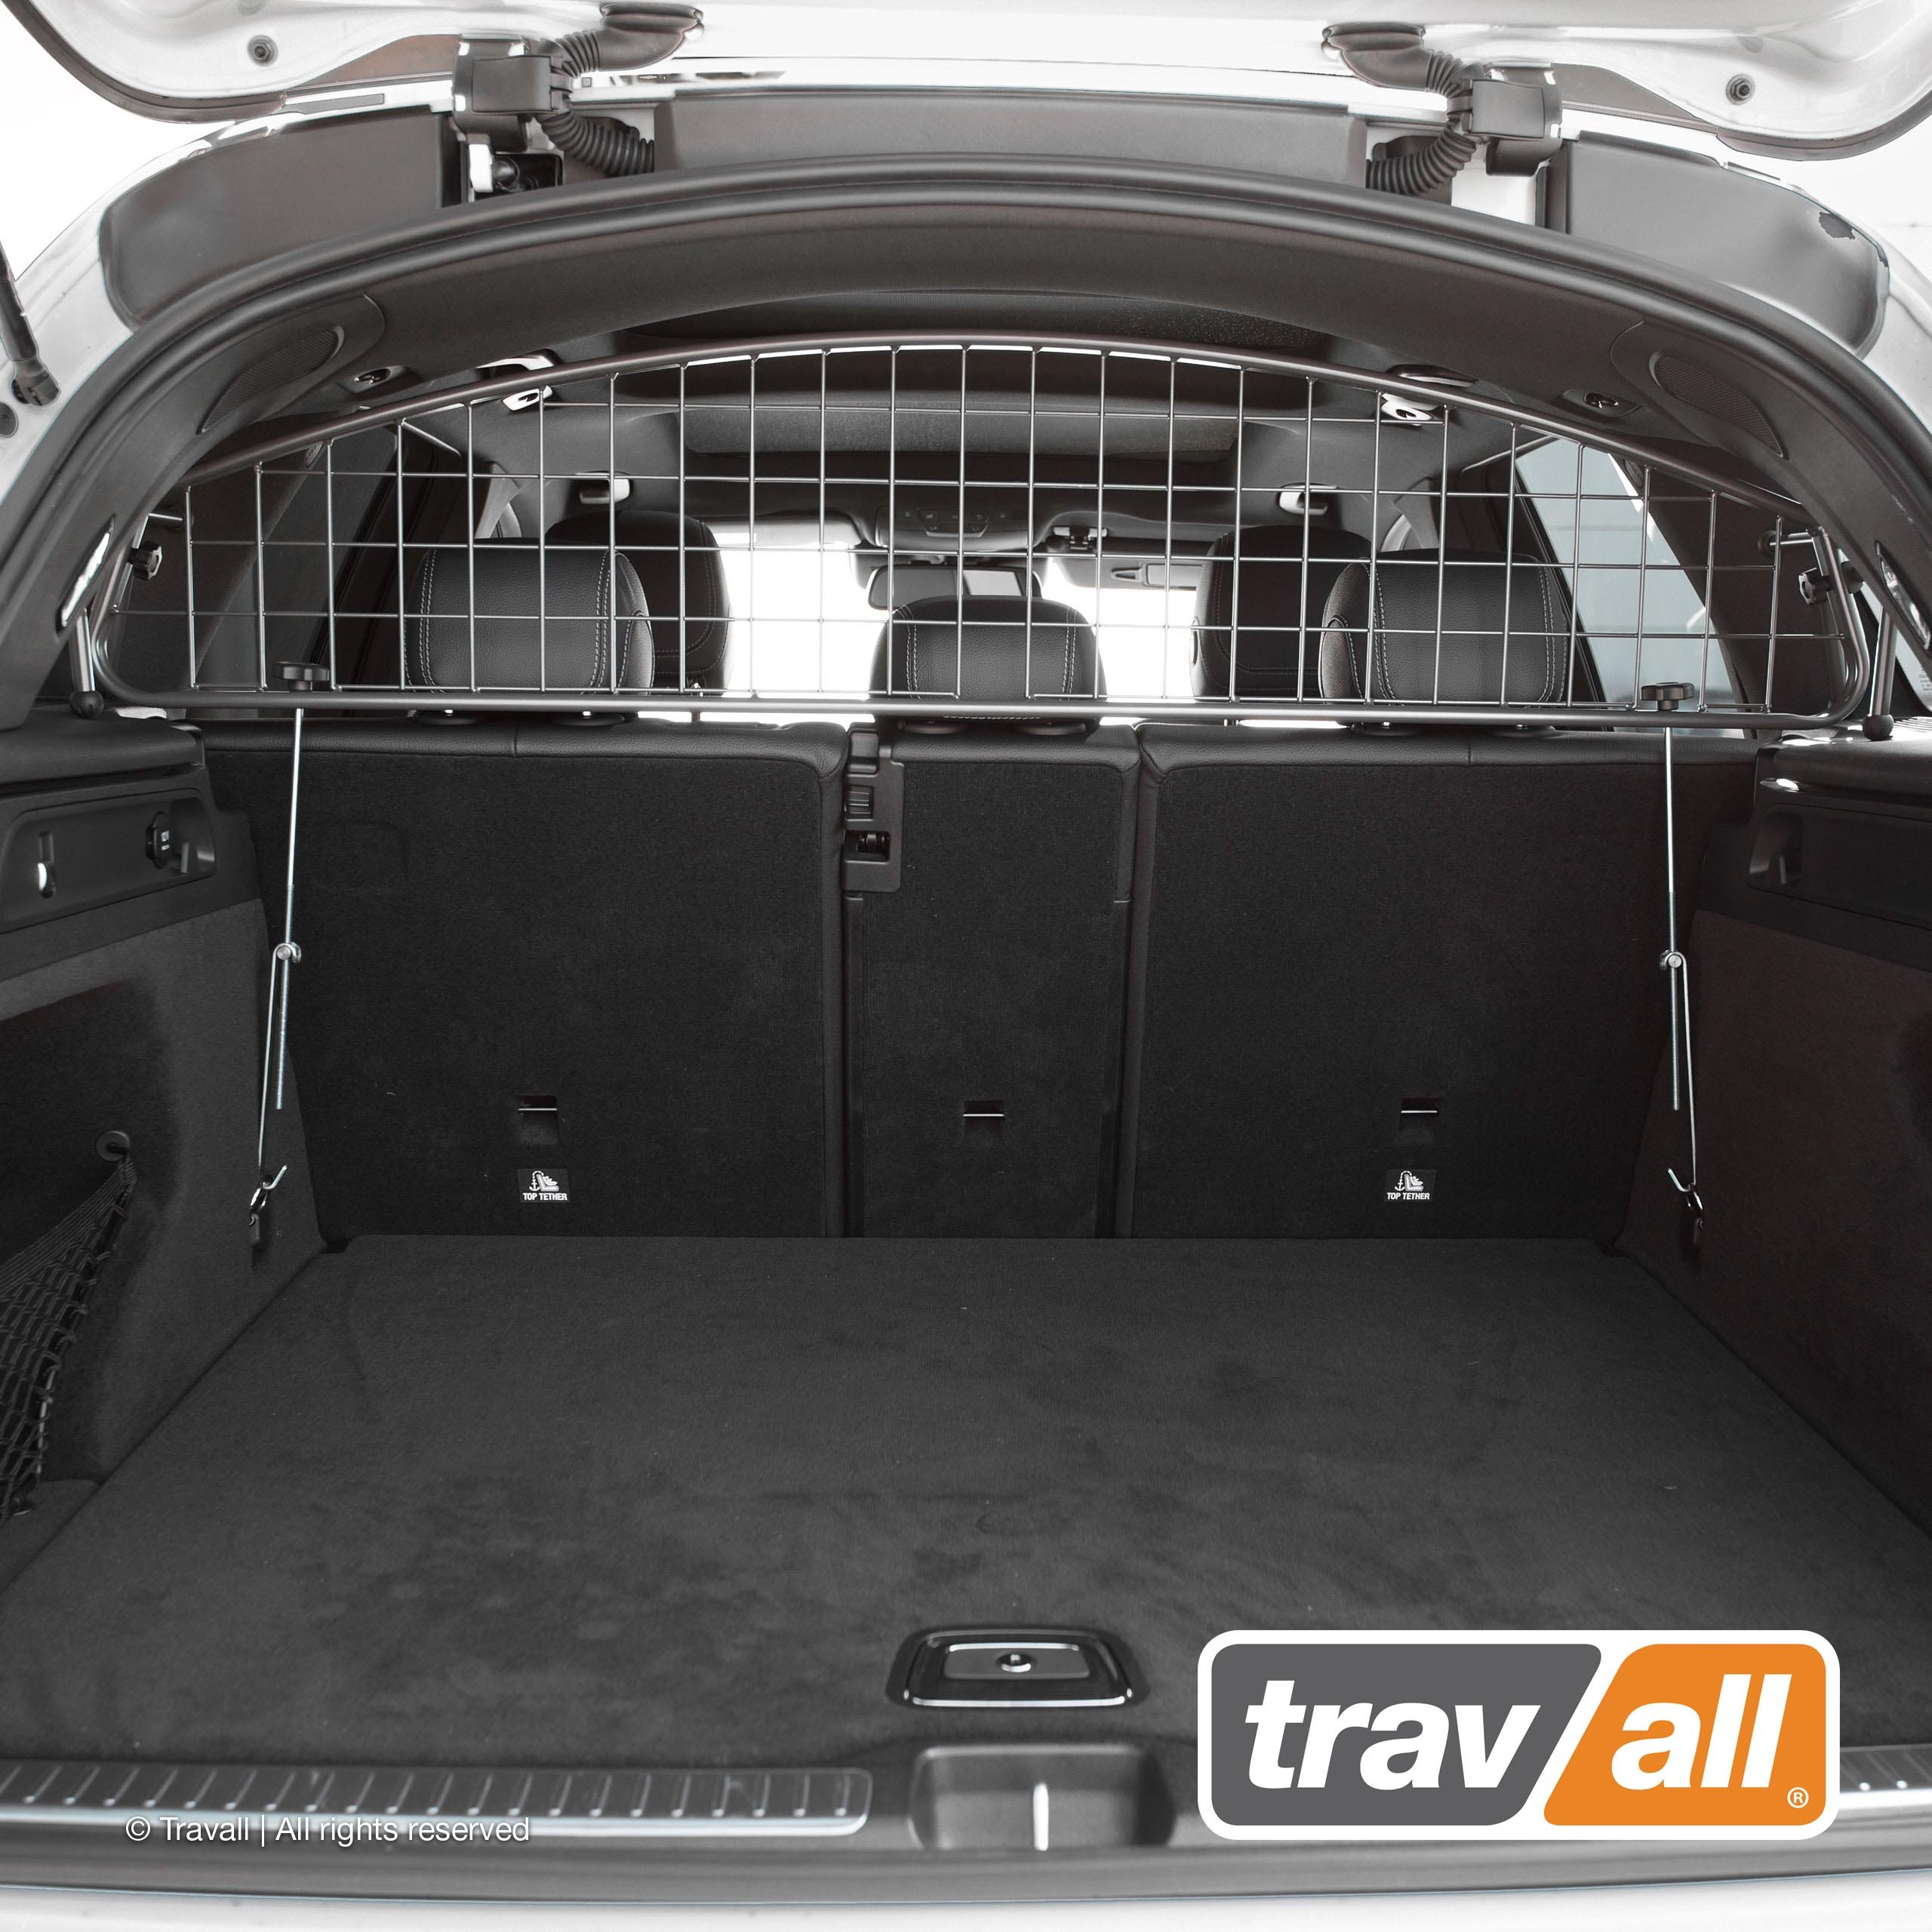 Travall Guard Compatible with Mercedes-Benz GLC-Class (2015-Current) TDG1499 - Rattle-Free Steel Pet Barrier by Travall